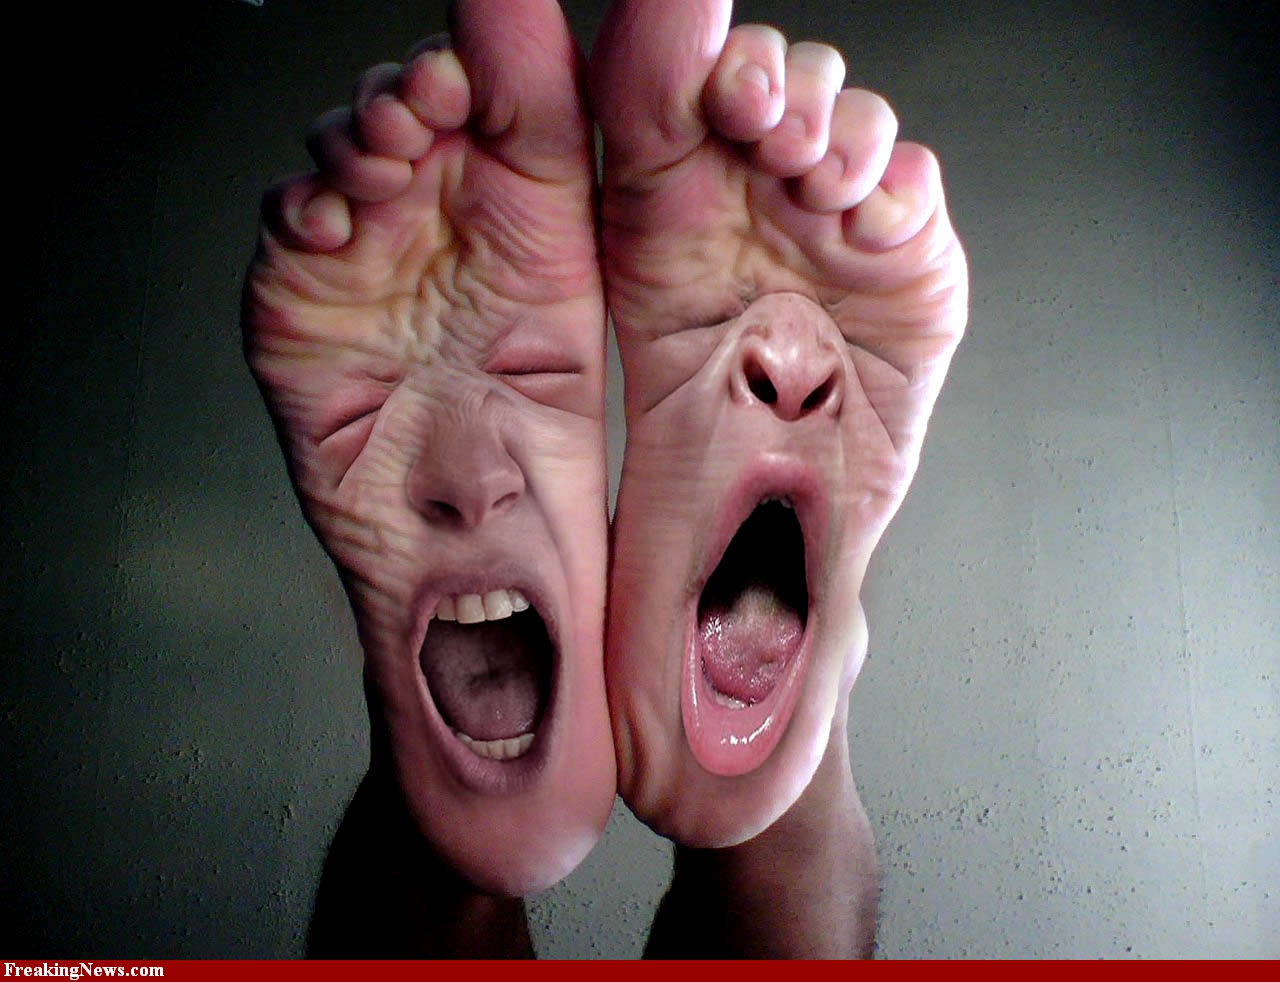 Why feet hurt when walking Why hurt hands and feet 54